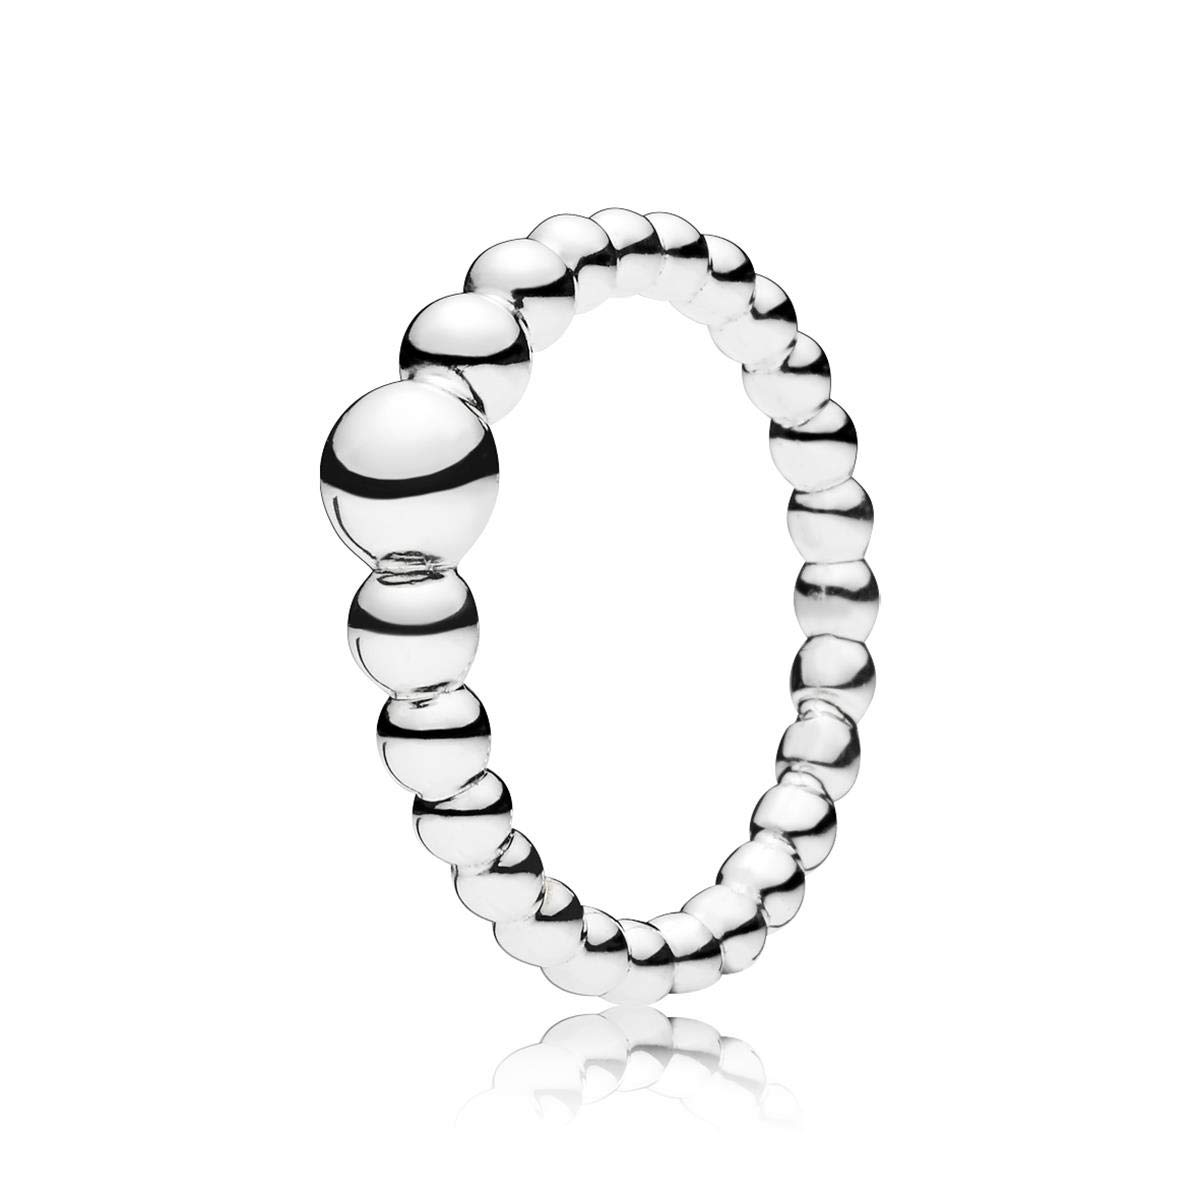 6df50aa02 Amazon.com: Pandora String of Beads Ring In Sterling Silver Size 5  19753650: Jewelry